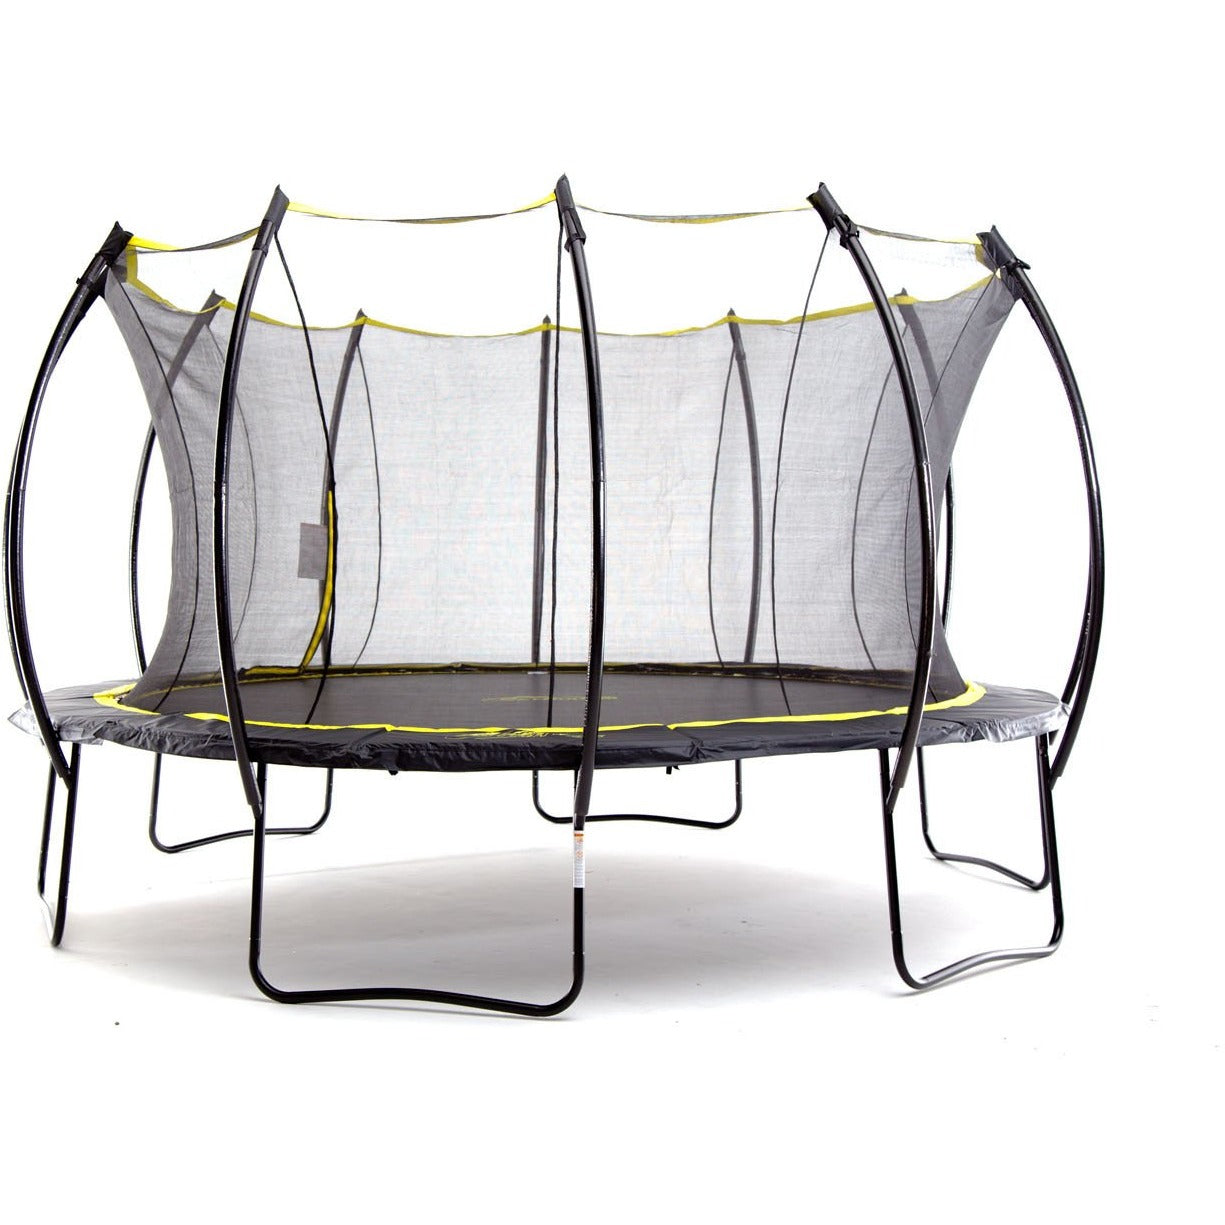 SkyBound 12 FT Stratos with Net Enclosure